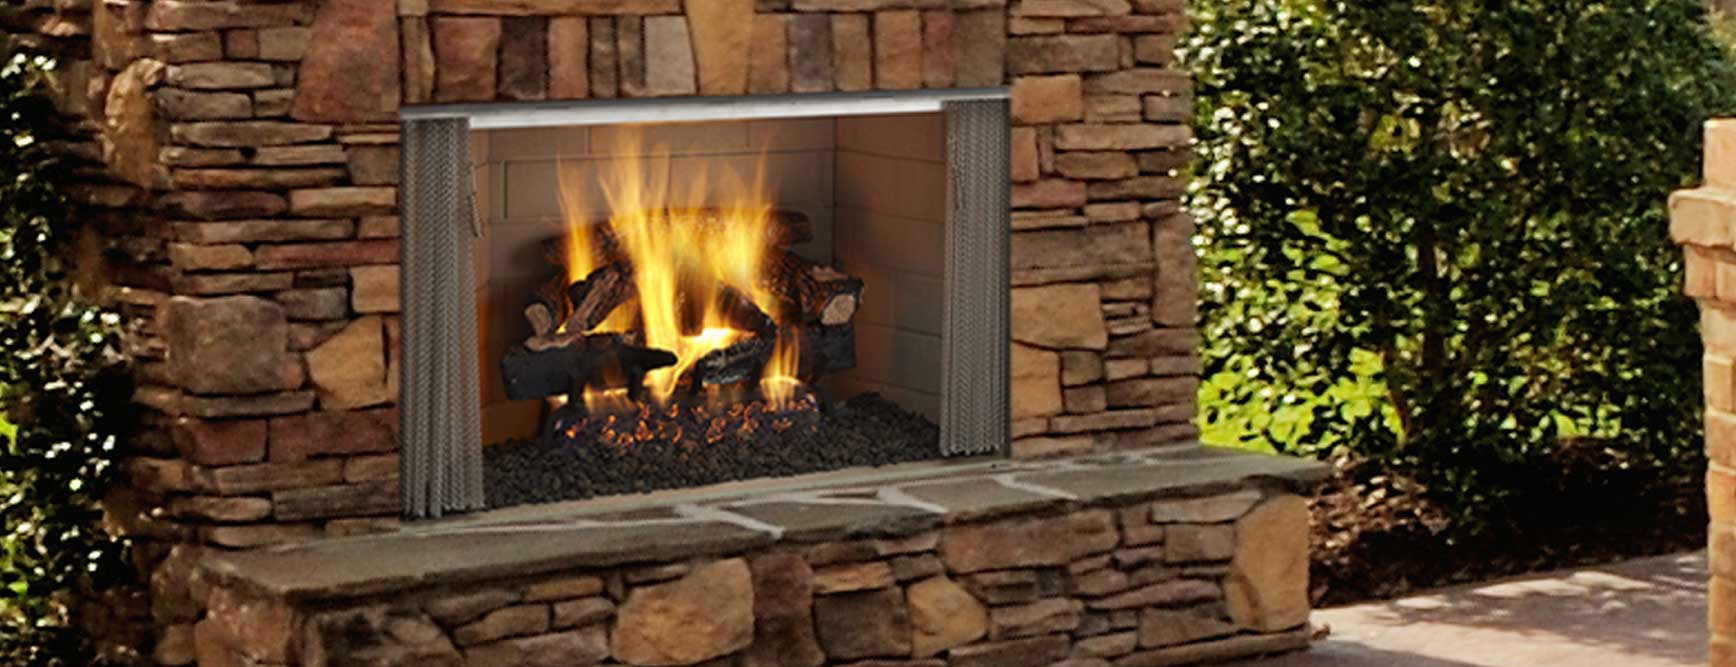 innovative system function style ignition fireplace infotellifire through the loaded direct hf hearth blends category plus outdoor like see chimney and fireplaces with auto this innovations mhc